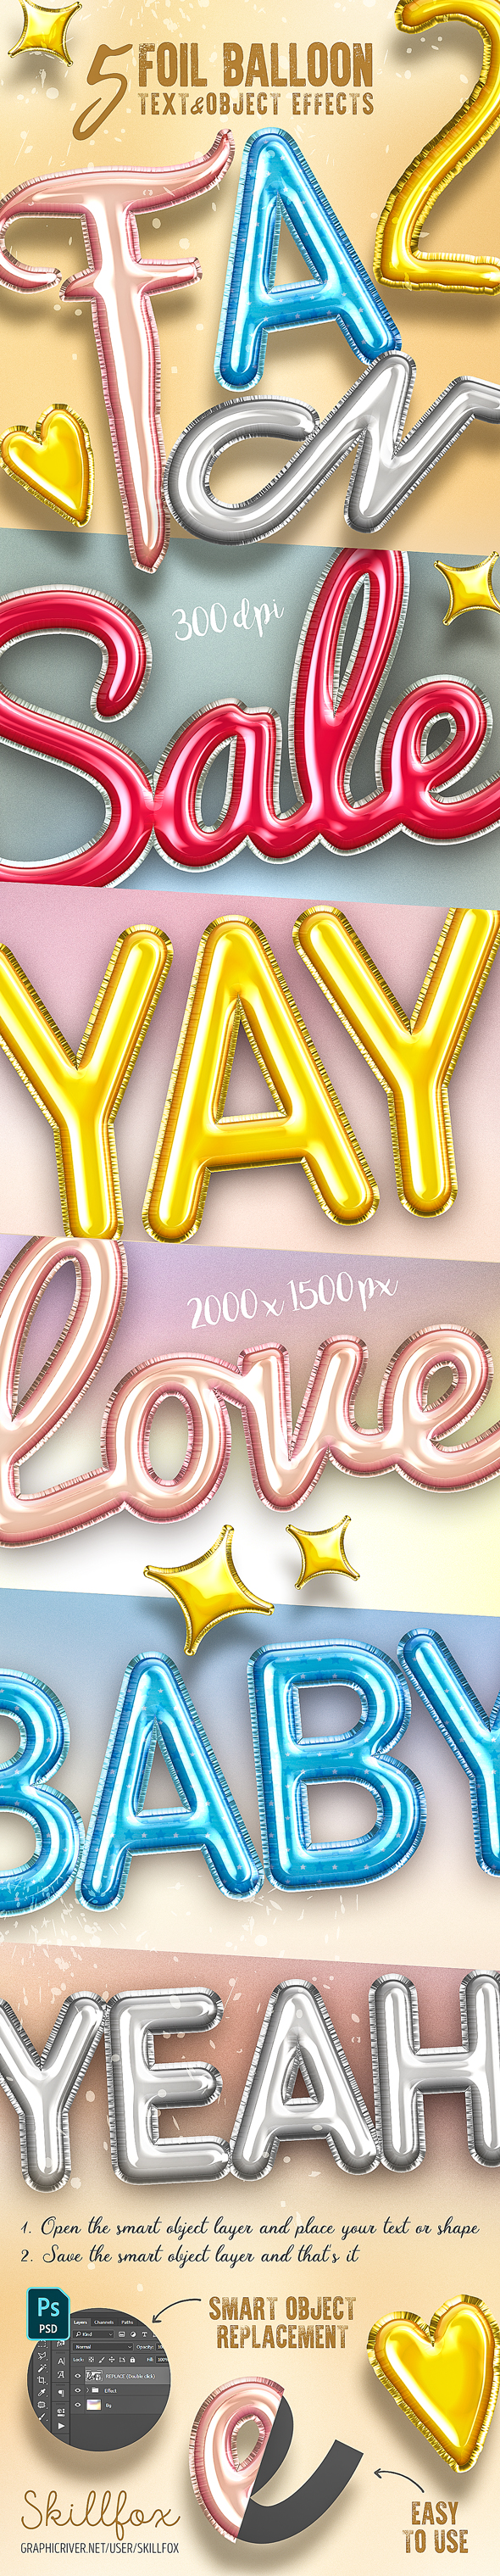 5 3D Foil Balloon Text Effects for Photoshop - Text Effects Actions